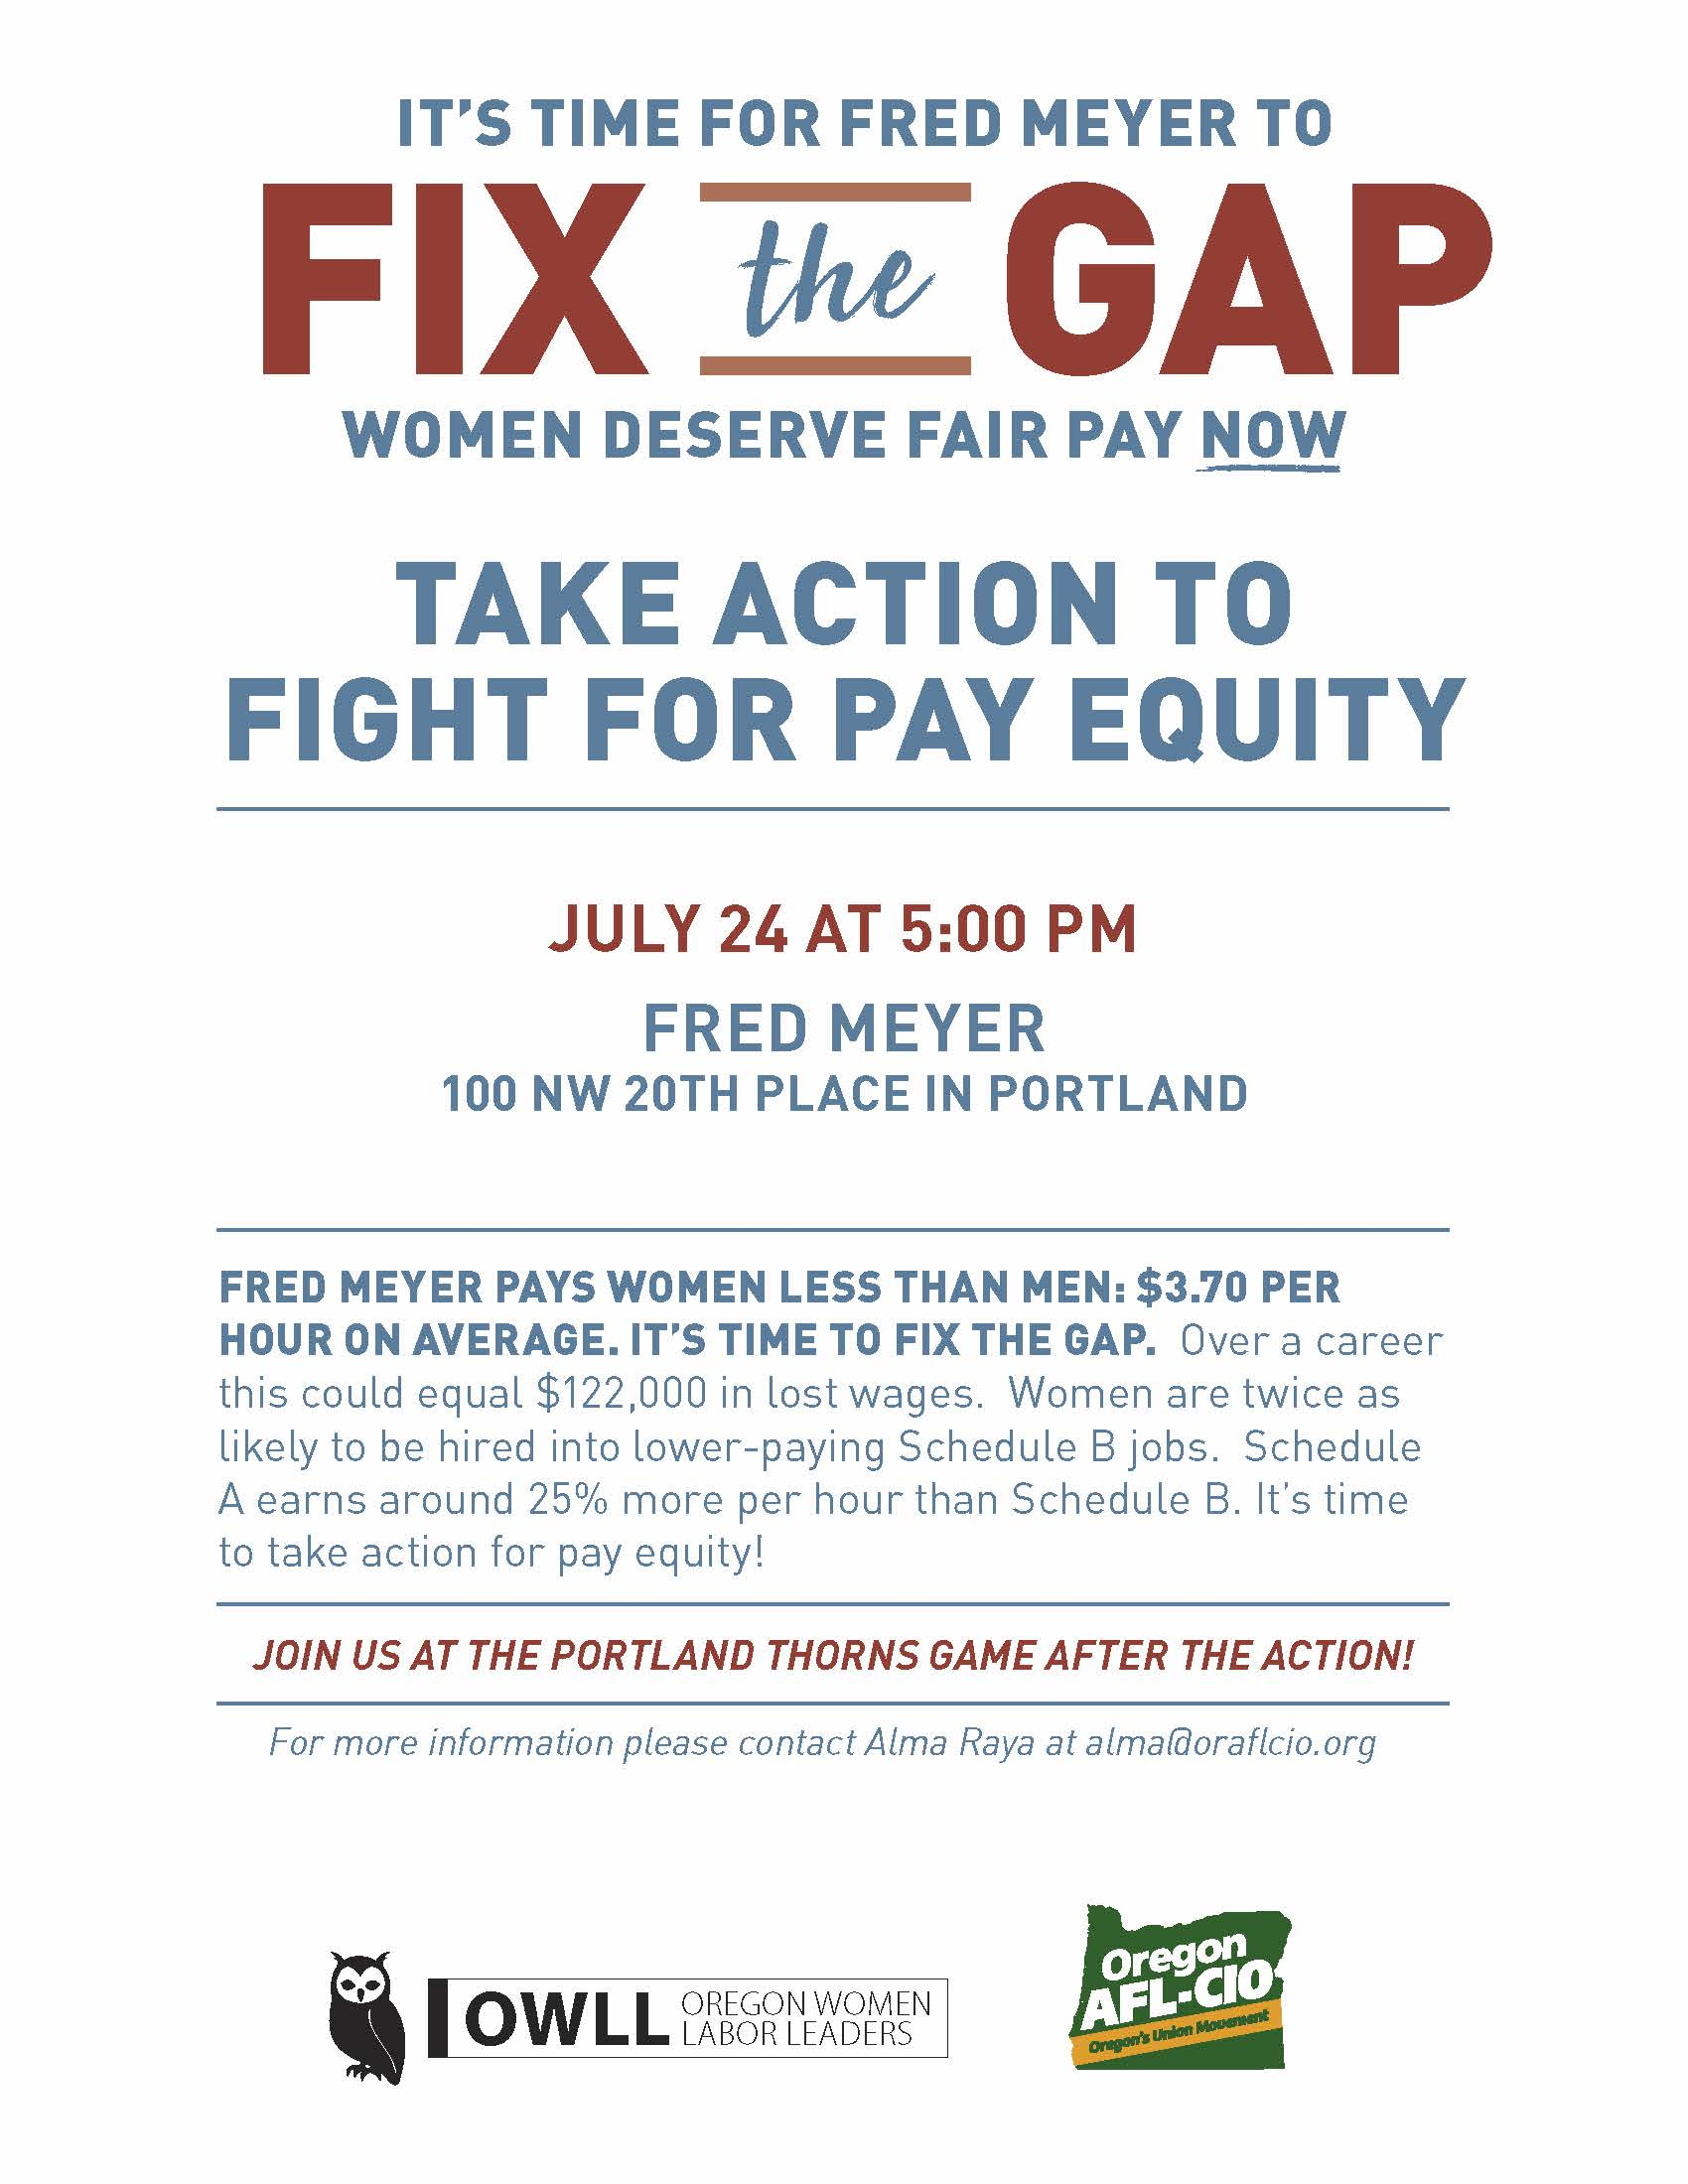 It's Time For Fred Meyer To Fix The Gap: Women Deserve Fair Pay Now